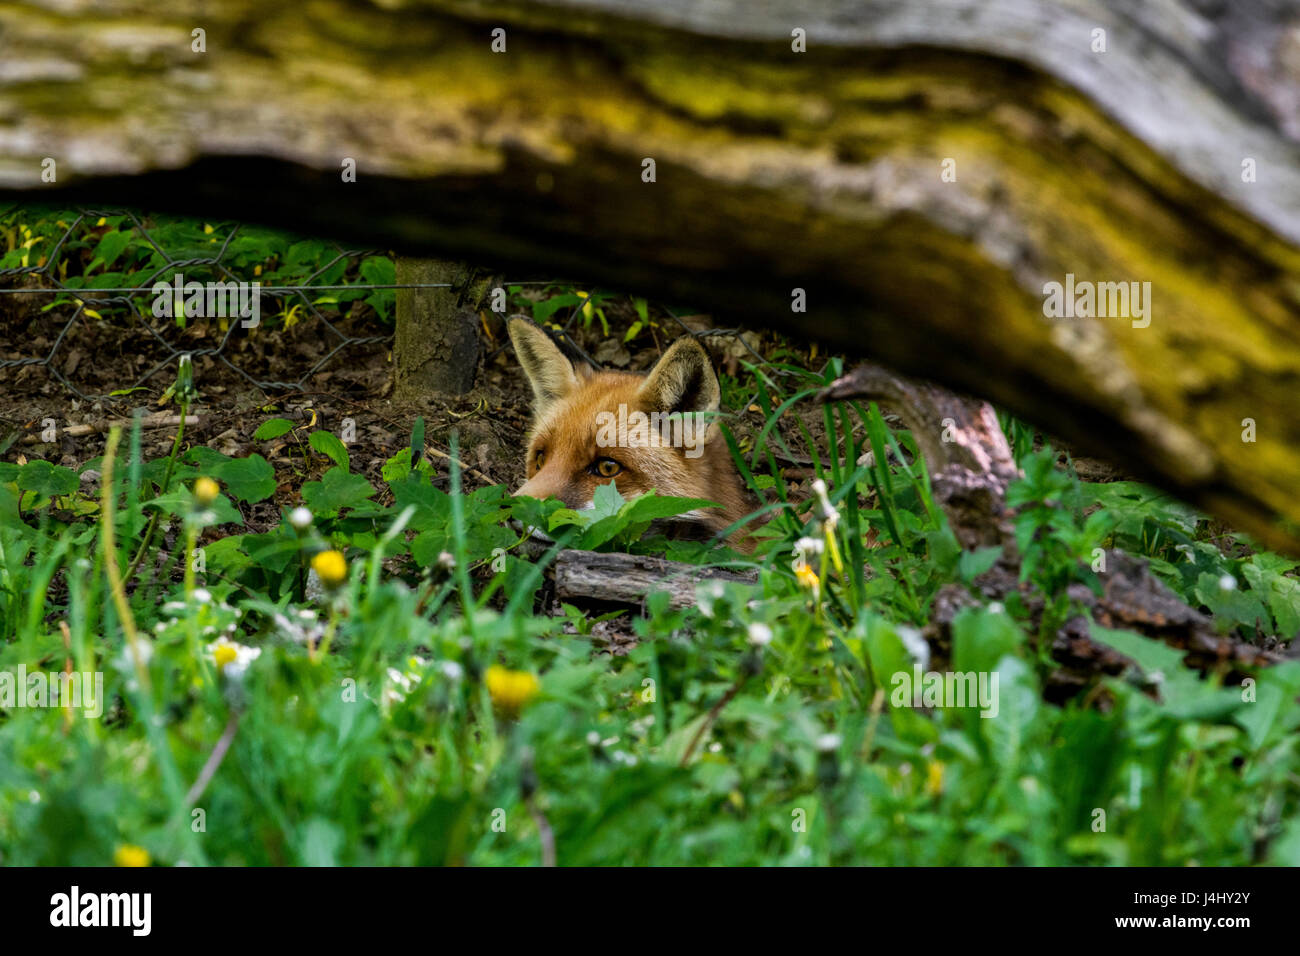 Hunting red fox (Vulpes vulpes) digging under chicken wire fence and stalking prey Stock Photo